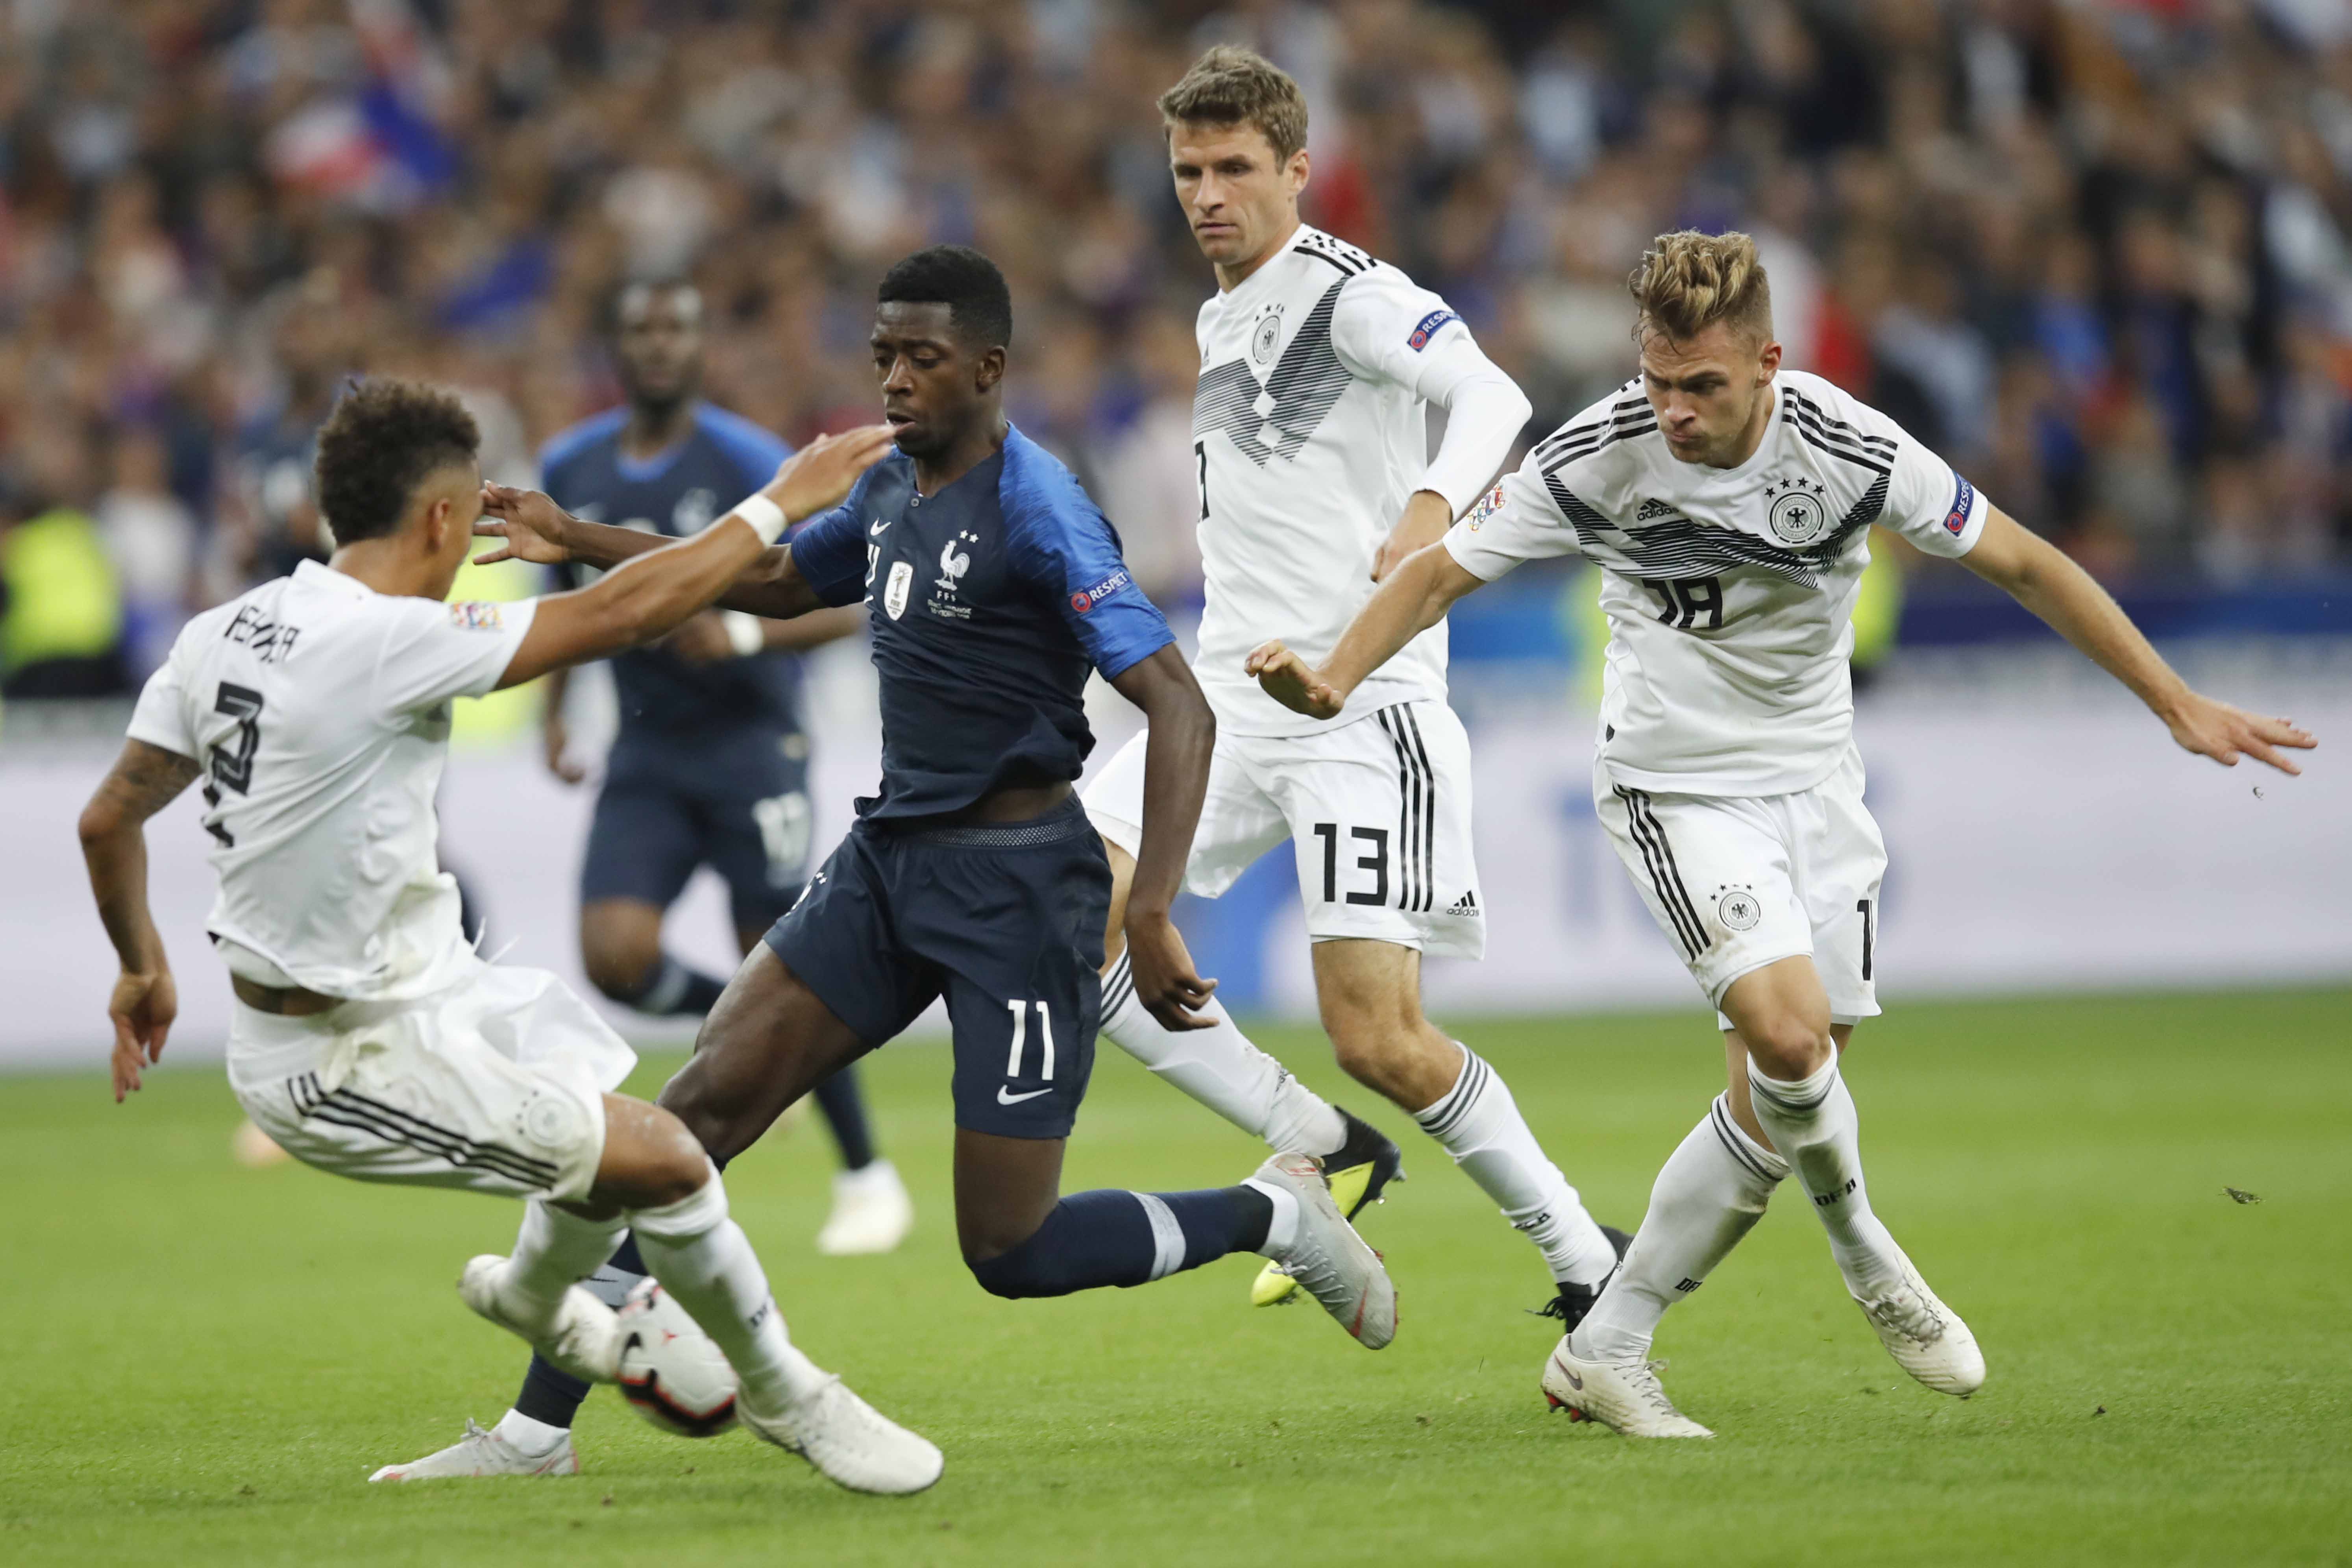 France's Ousmane Dembele (2nd left) challenges for the ball with German player, Thilo Kehrer (left) Thomas Mueller (2nd right) and Joshua Kimmich during a UEFA Nations League soccer match between France and Germany at Stade de France stadium in Saint Denis, north of Paris on Tuesday.